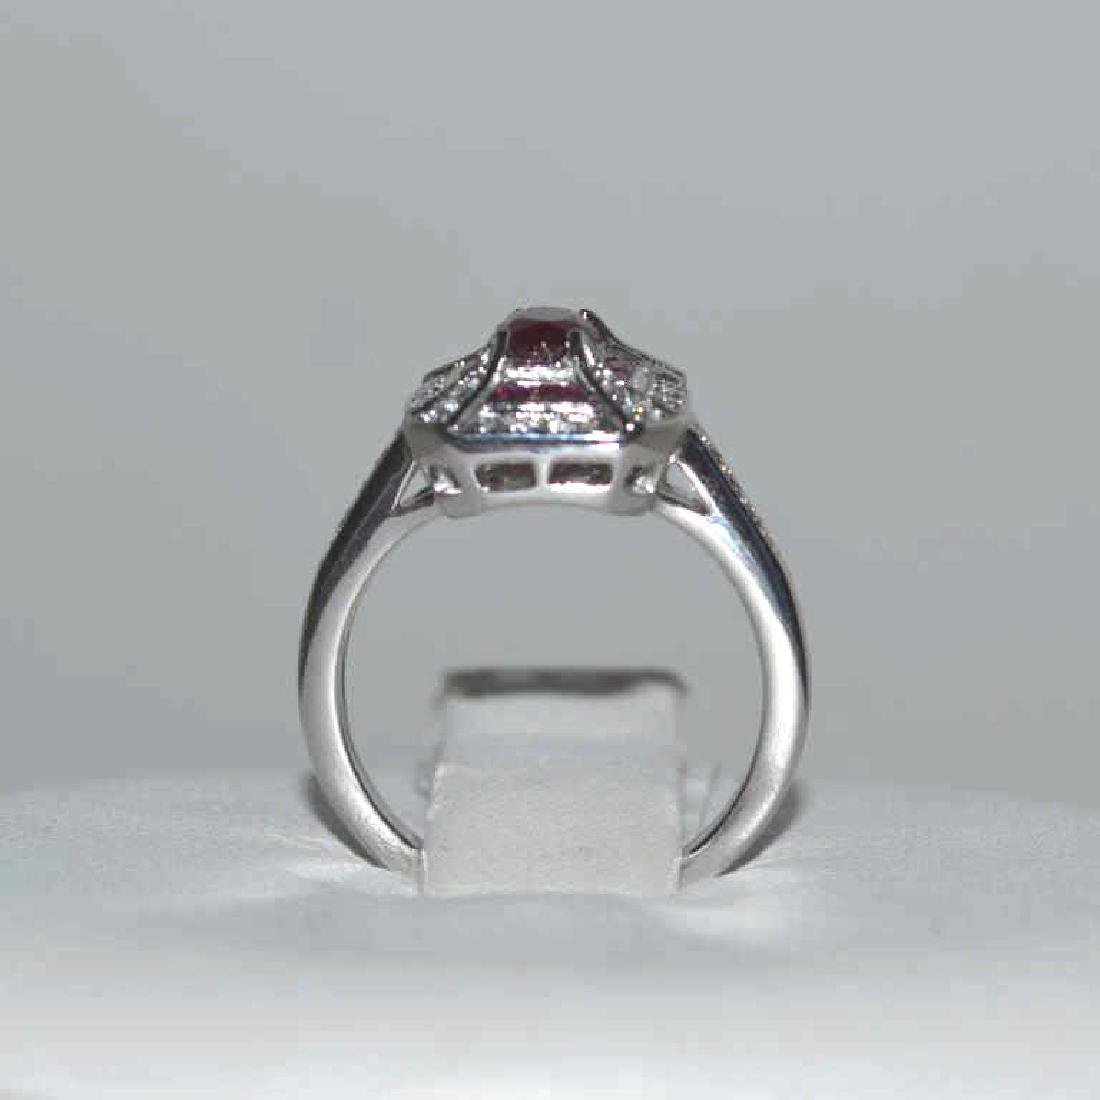 14kt white gold ruby and diamond ring - 3